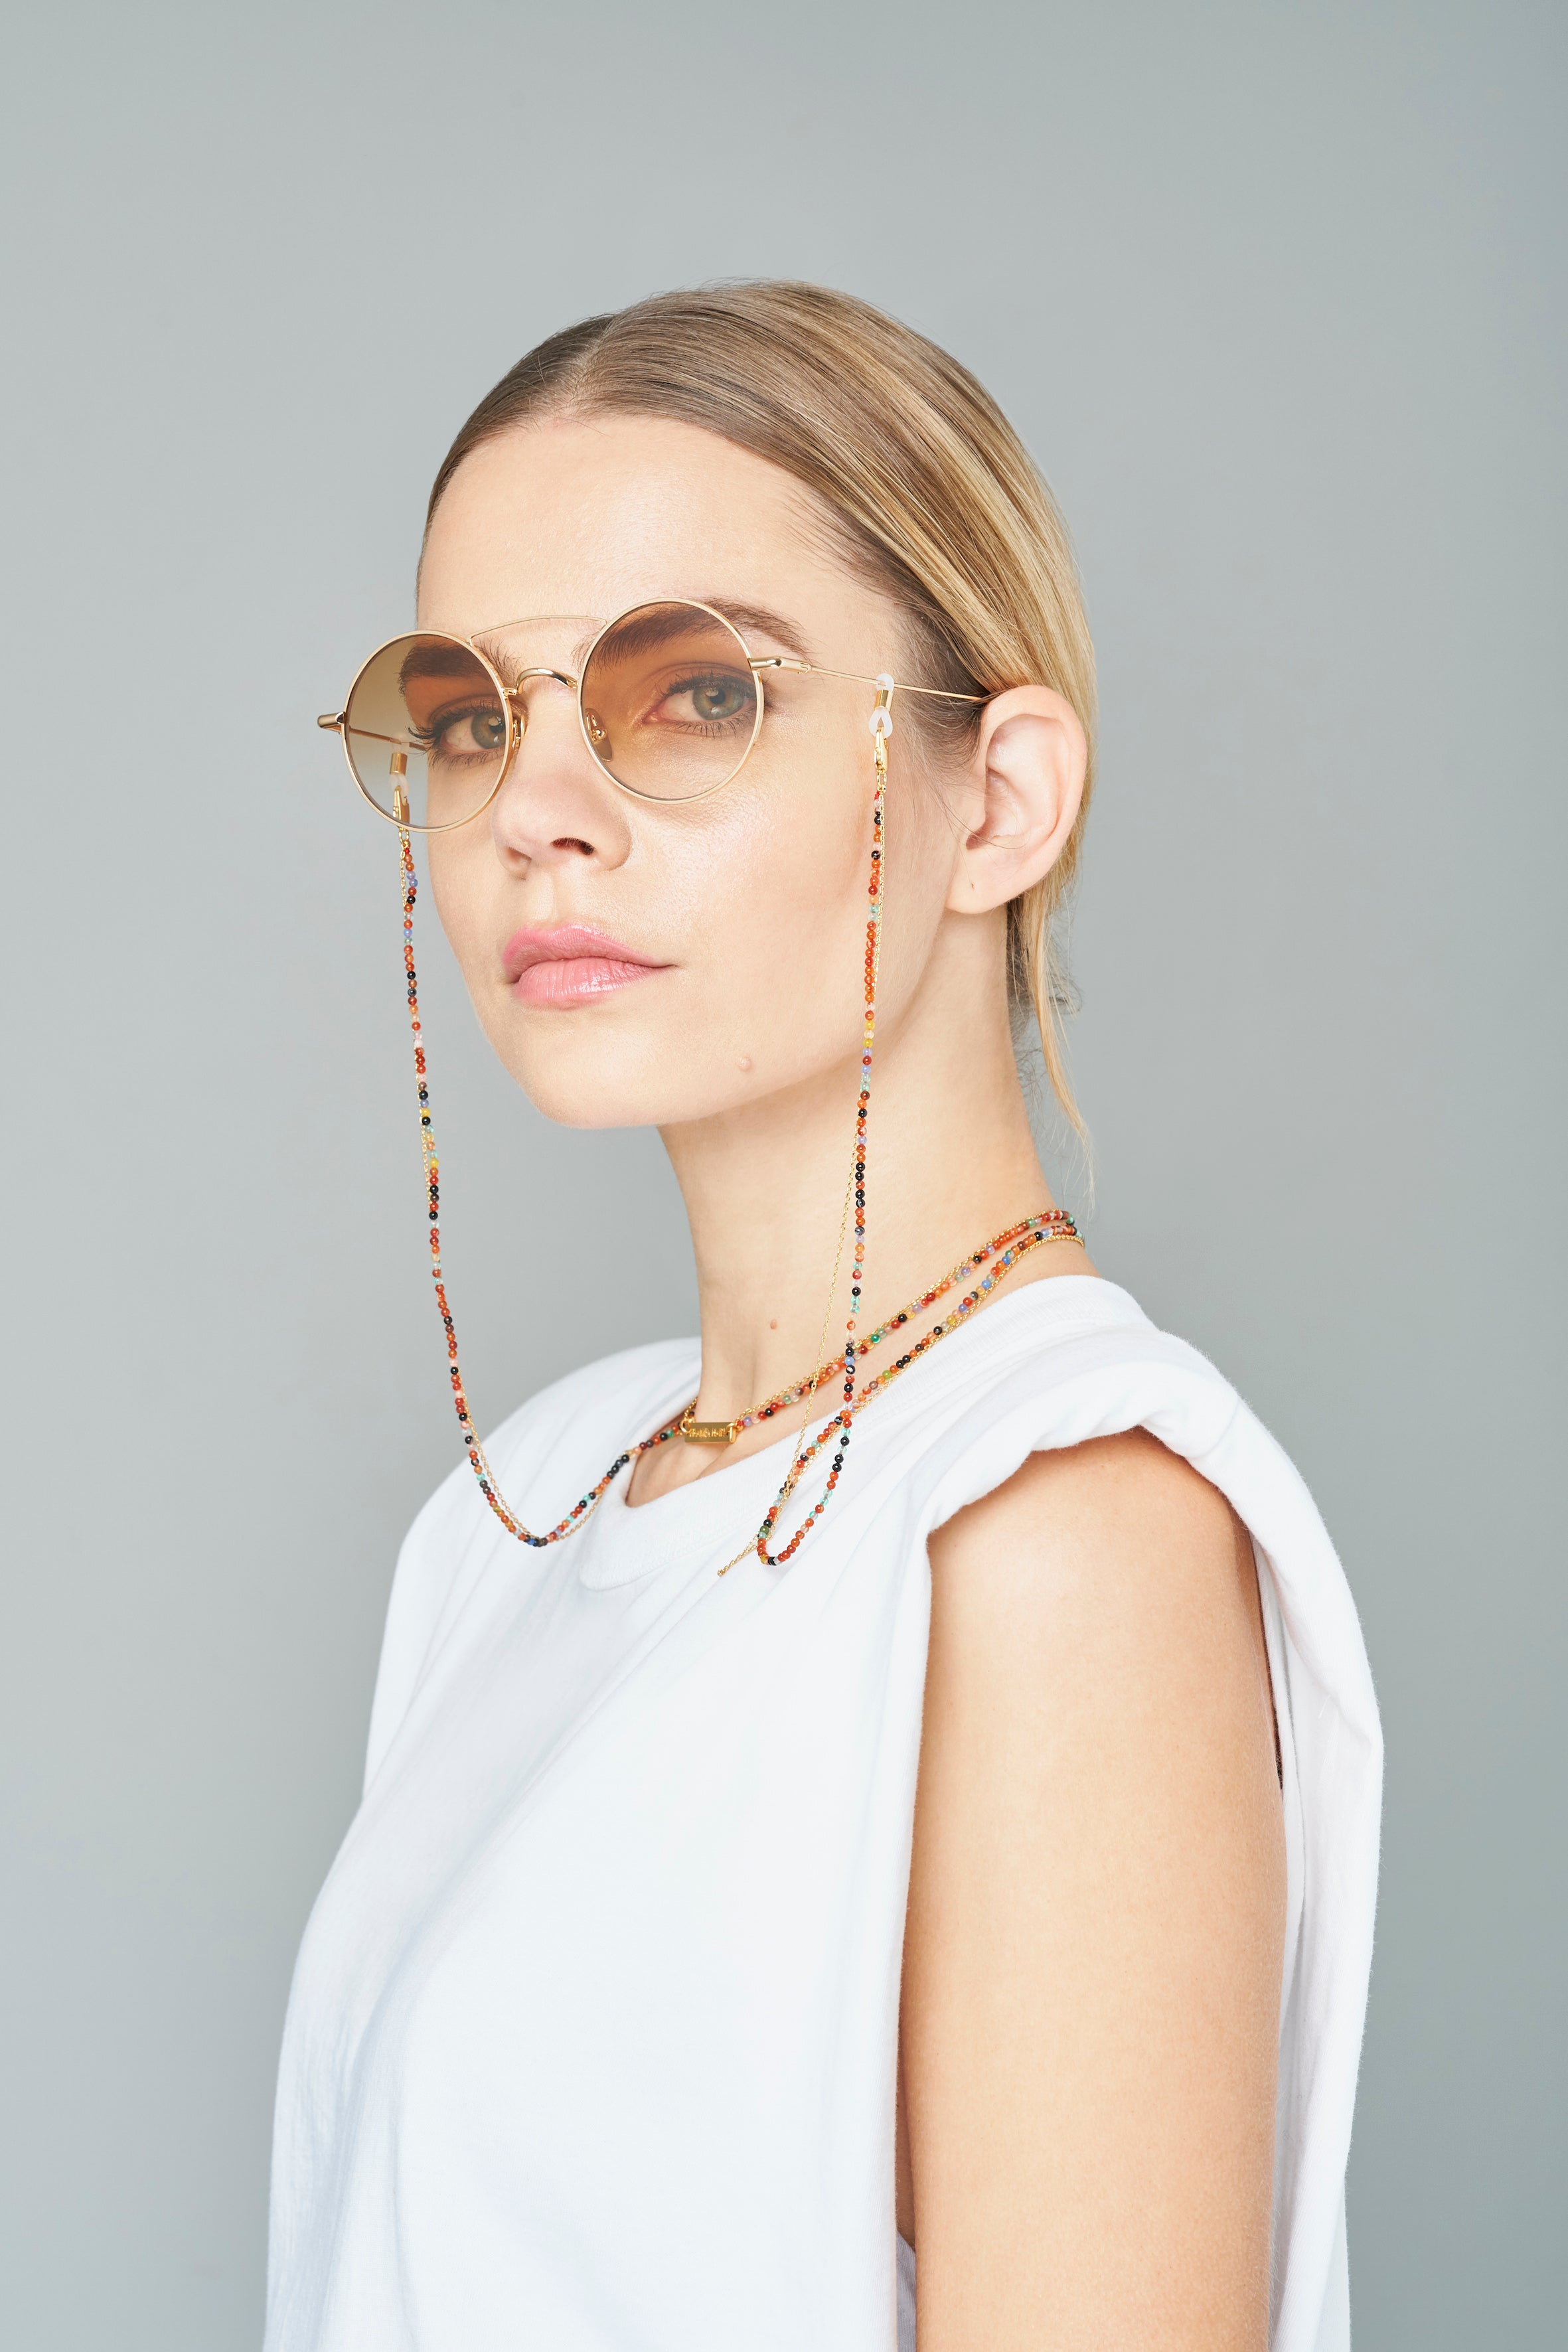 FRAME CHAIN | IT'S A WRAP | Glasses Chains | Eyewear Chains